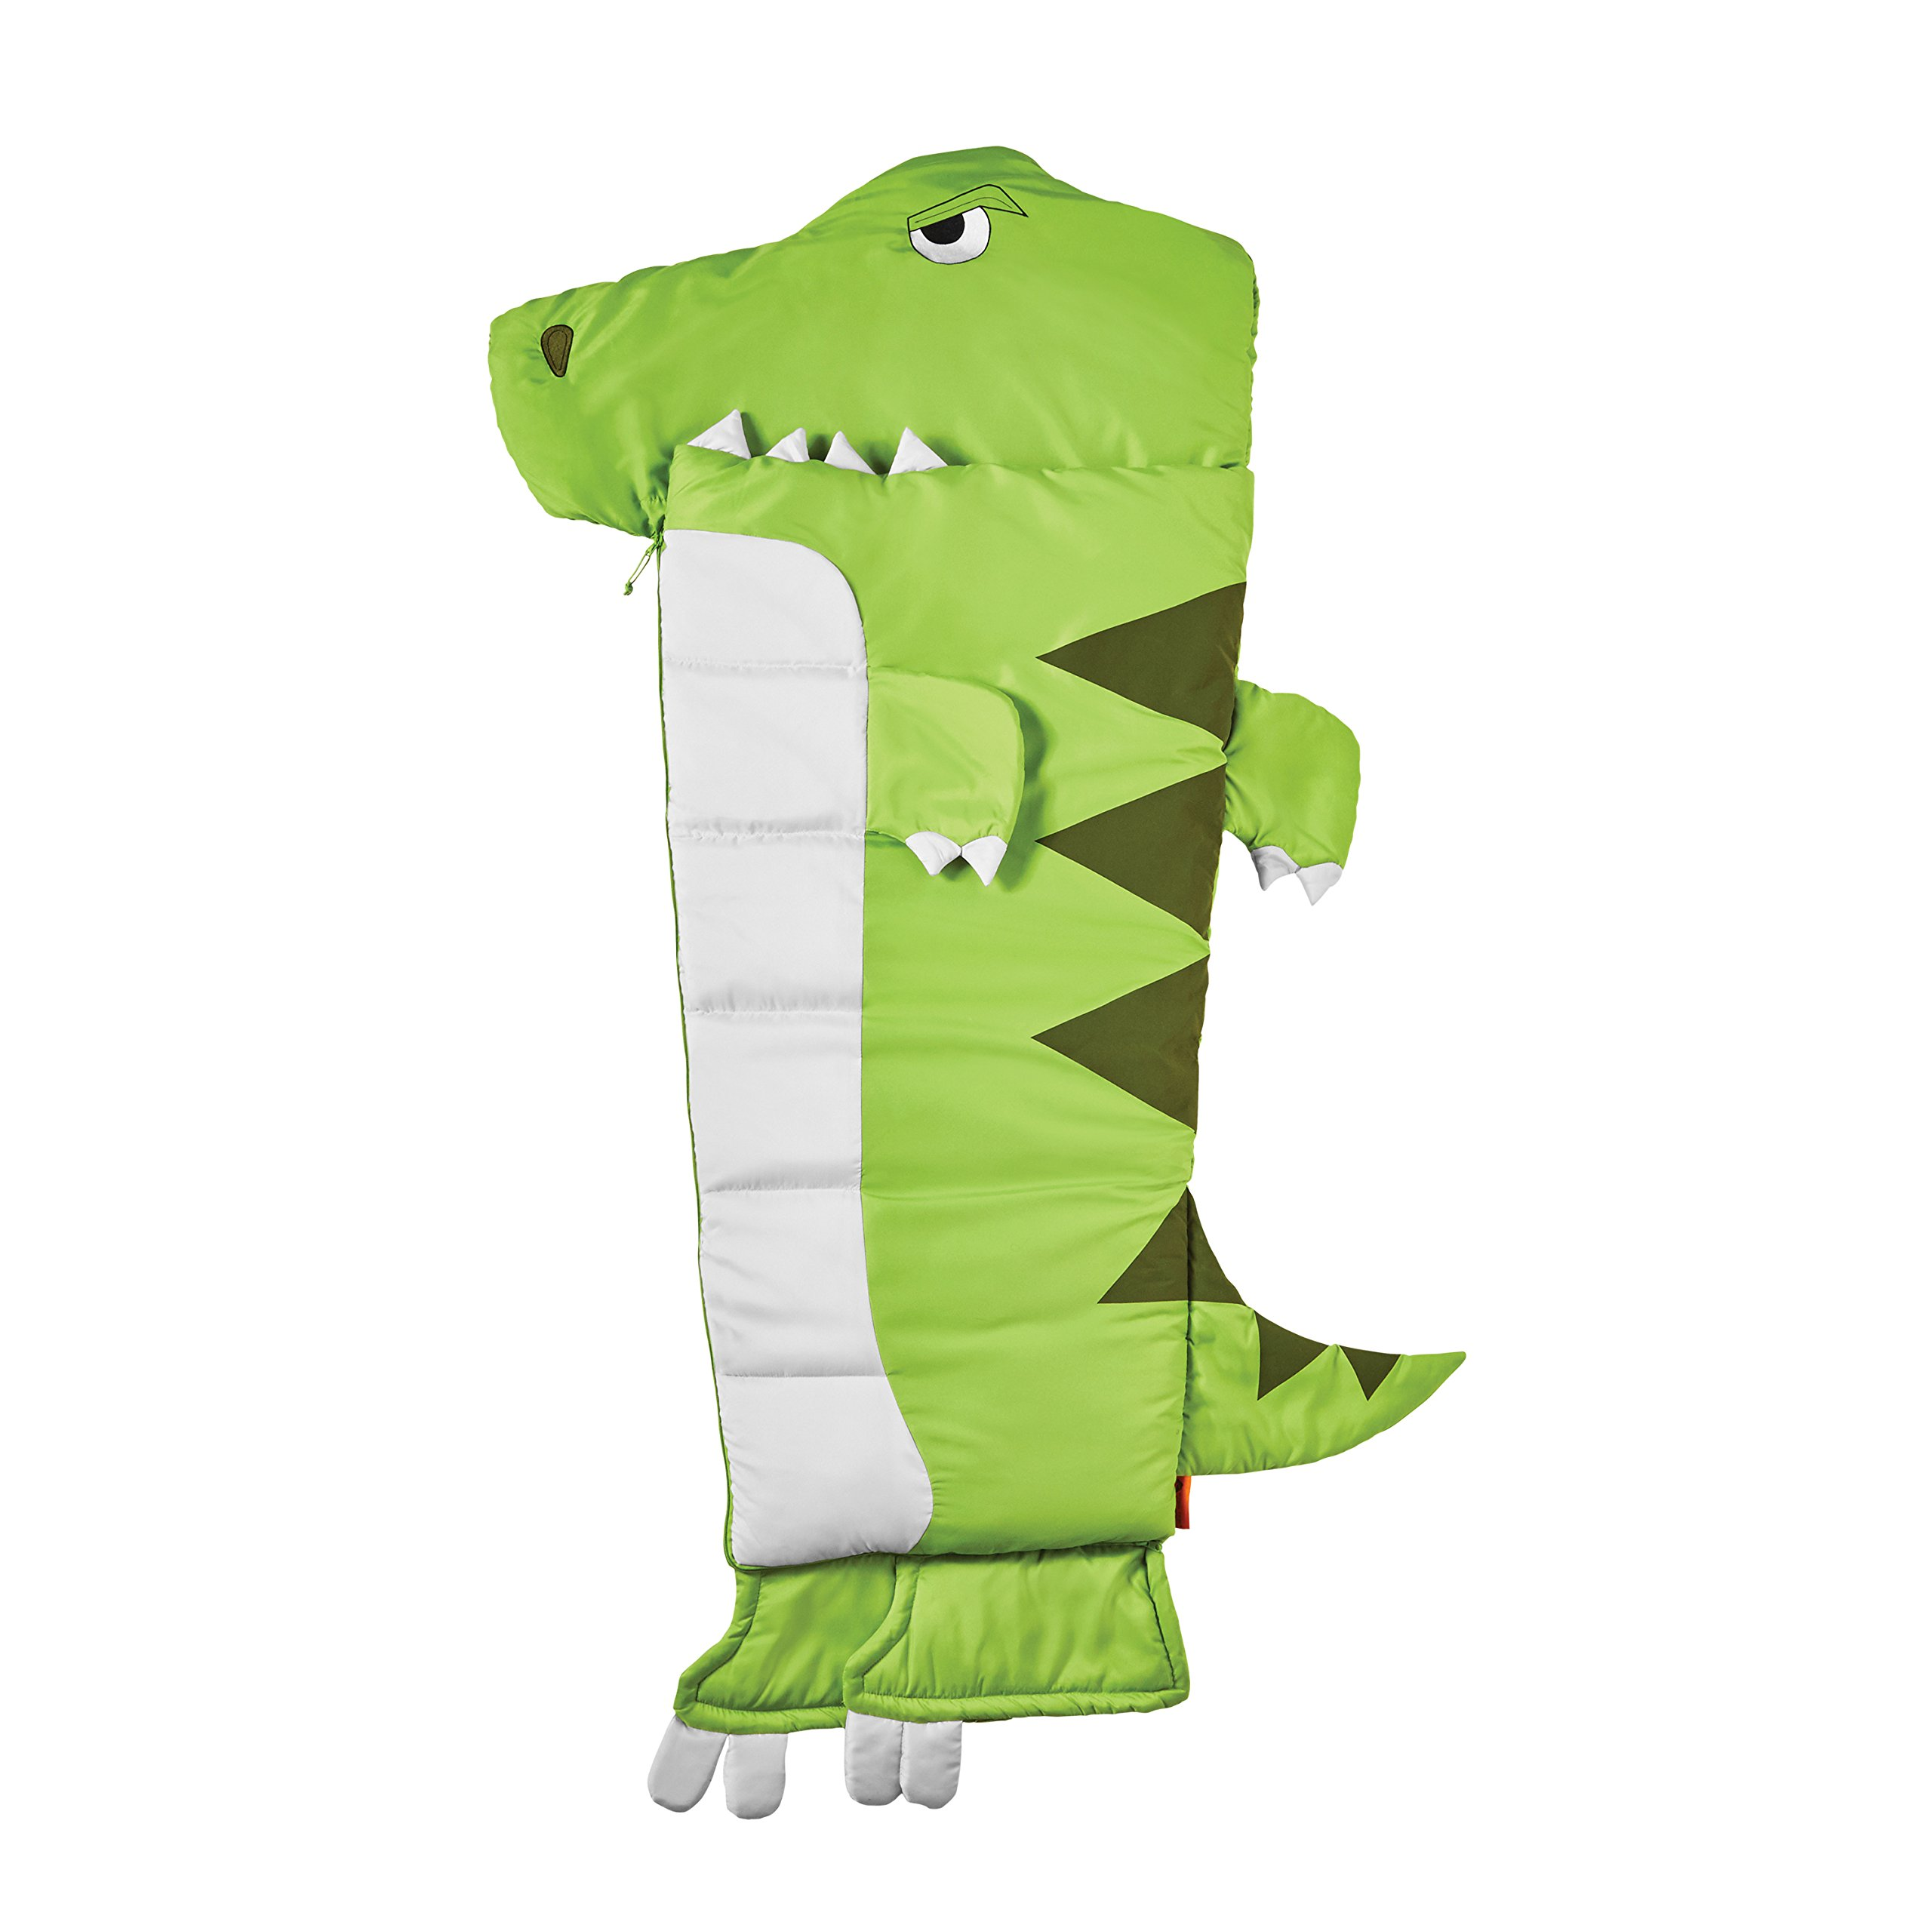 L&M kids Boys Green Dinosaur Shaped Sleeping Bag, T-Rex Rexasaurus Jurassic Reptile Animal character Motif, Tyrannosaurus Rex Leafy Green White Light Travel Bed Roll